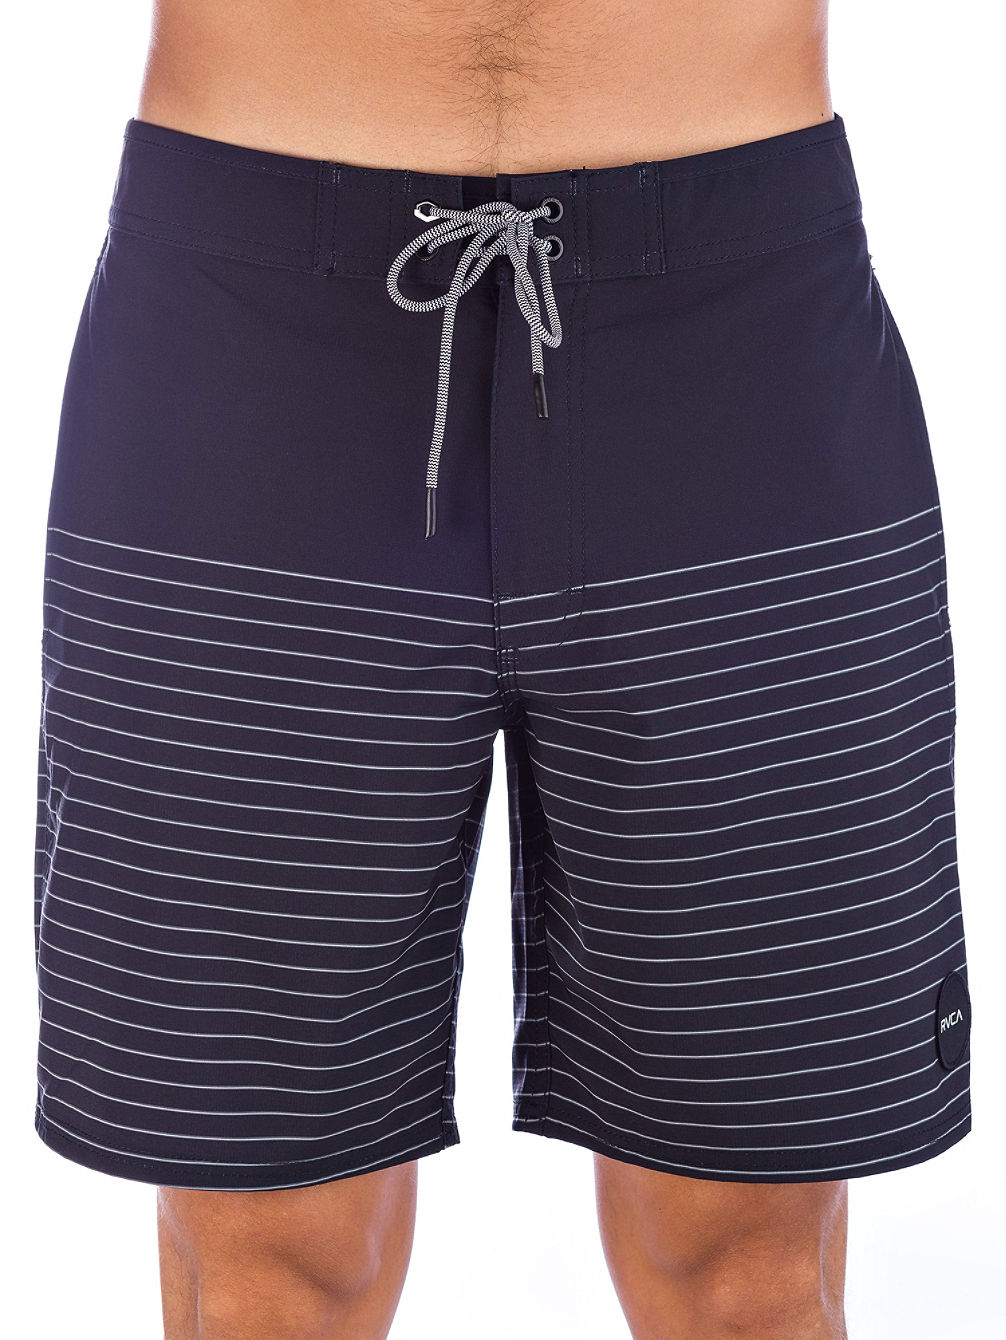 Curren Boardshorts